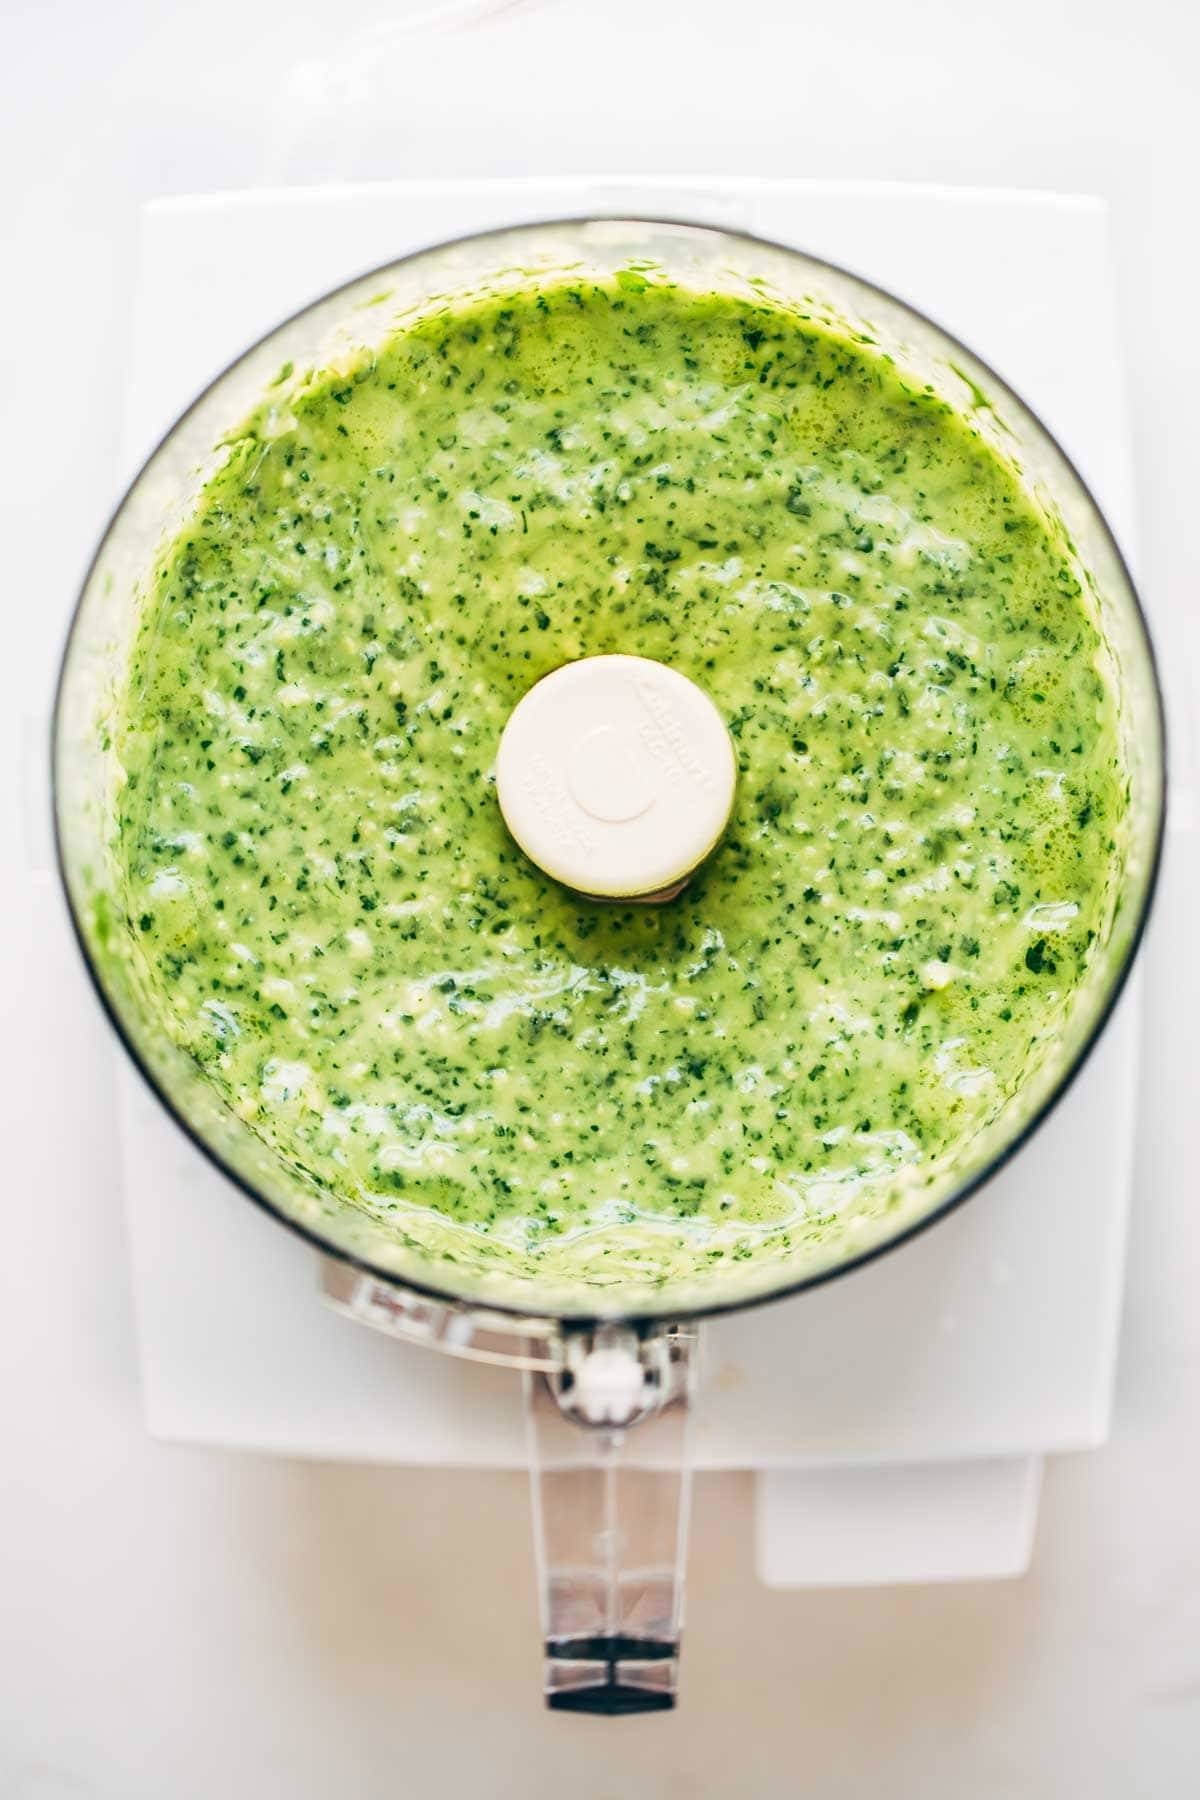 5 Minute Magic Green Sauce - SO AWESOME. Made with easy ingredients like avocado, olive oil, cilantro, lime, garlic, and parsley! Vegan. | pinchofyum.com